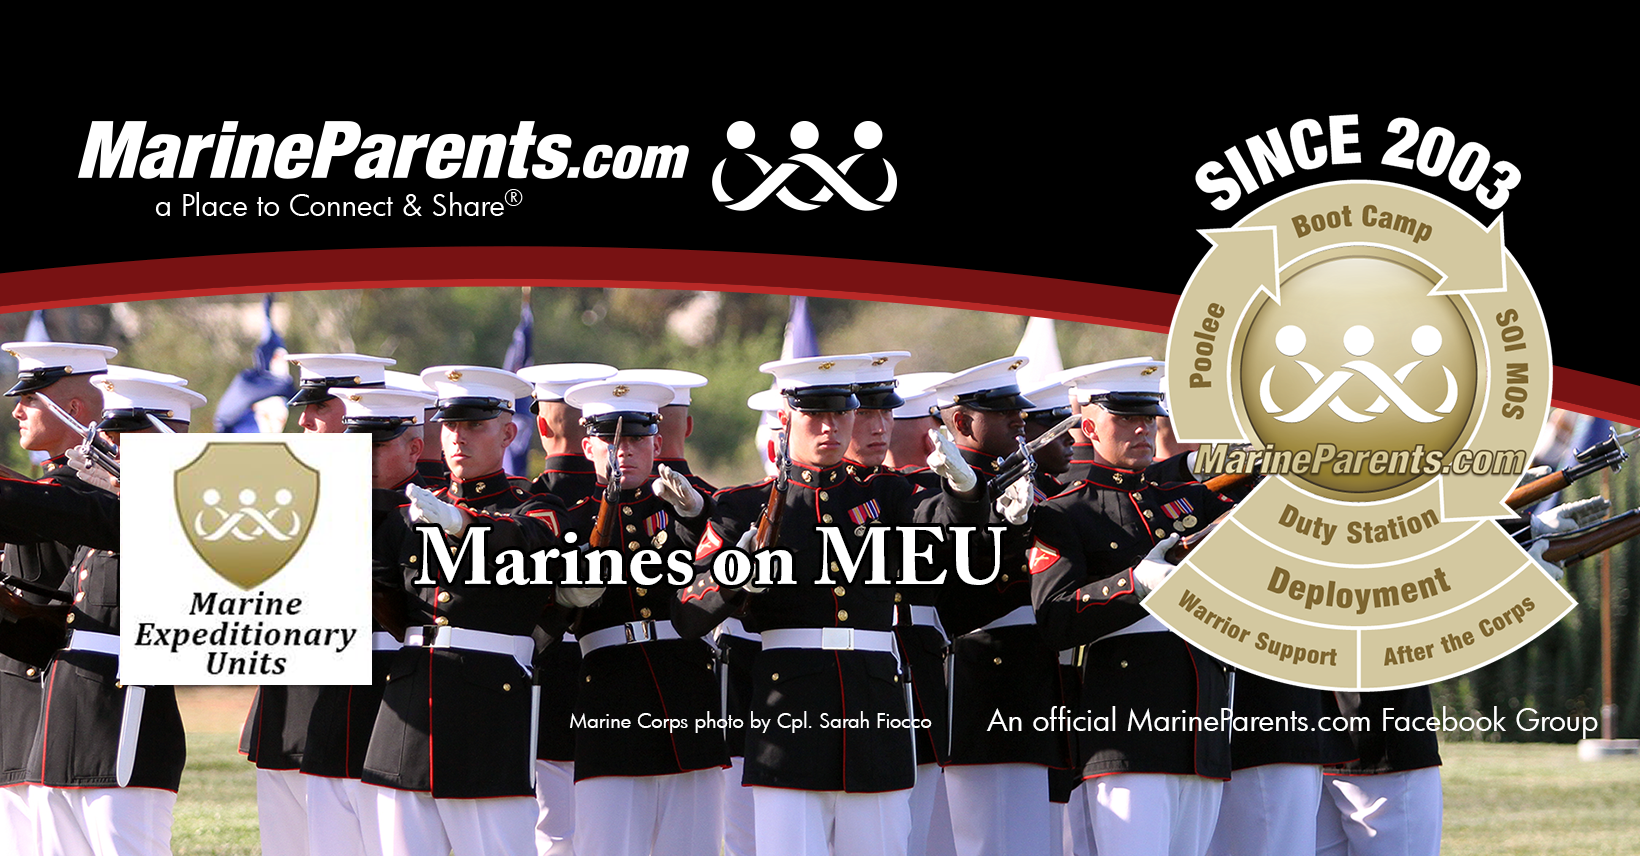 MarineParents.com MPMEU